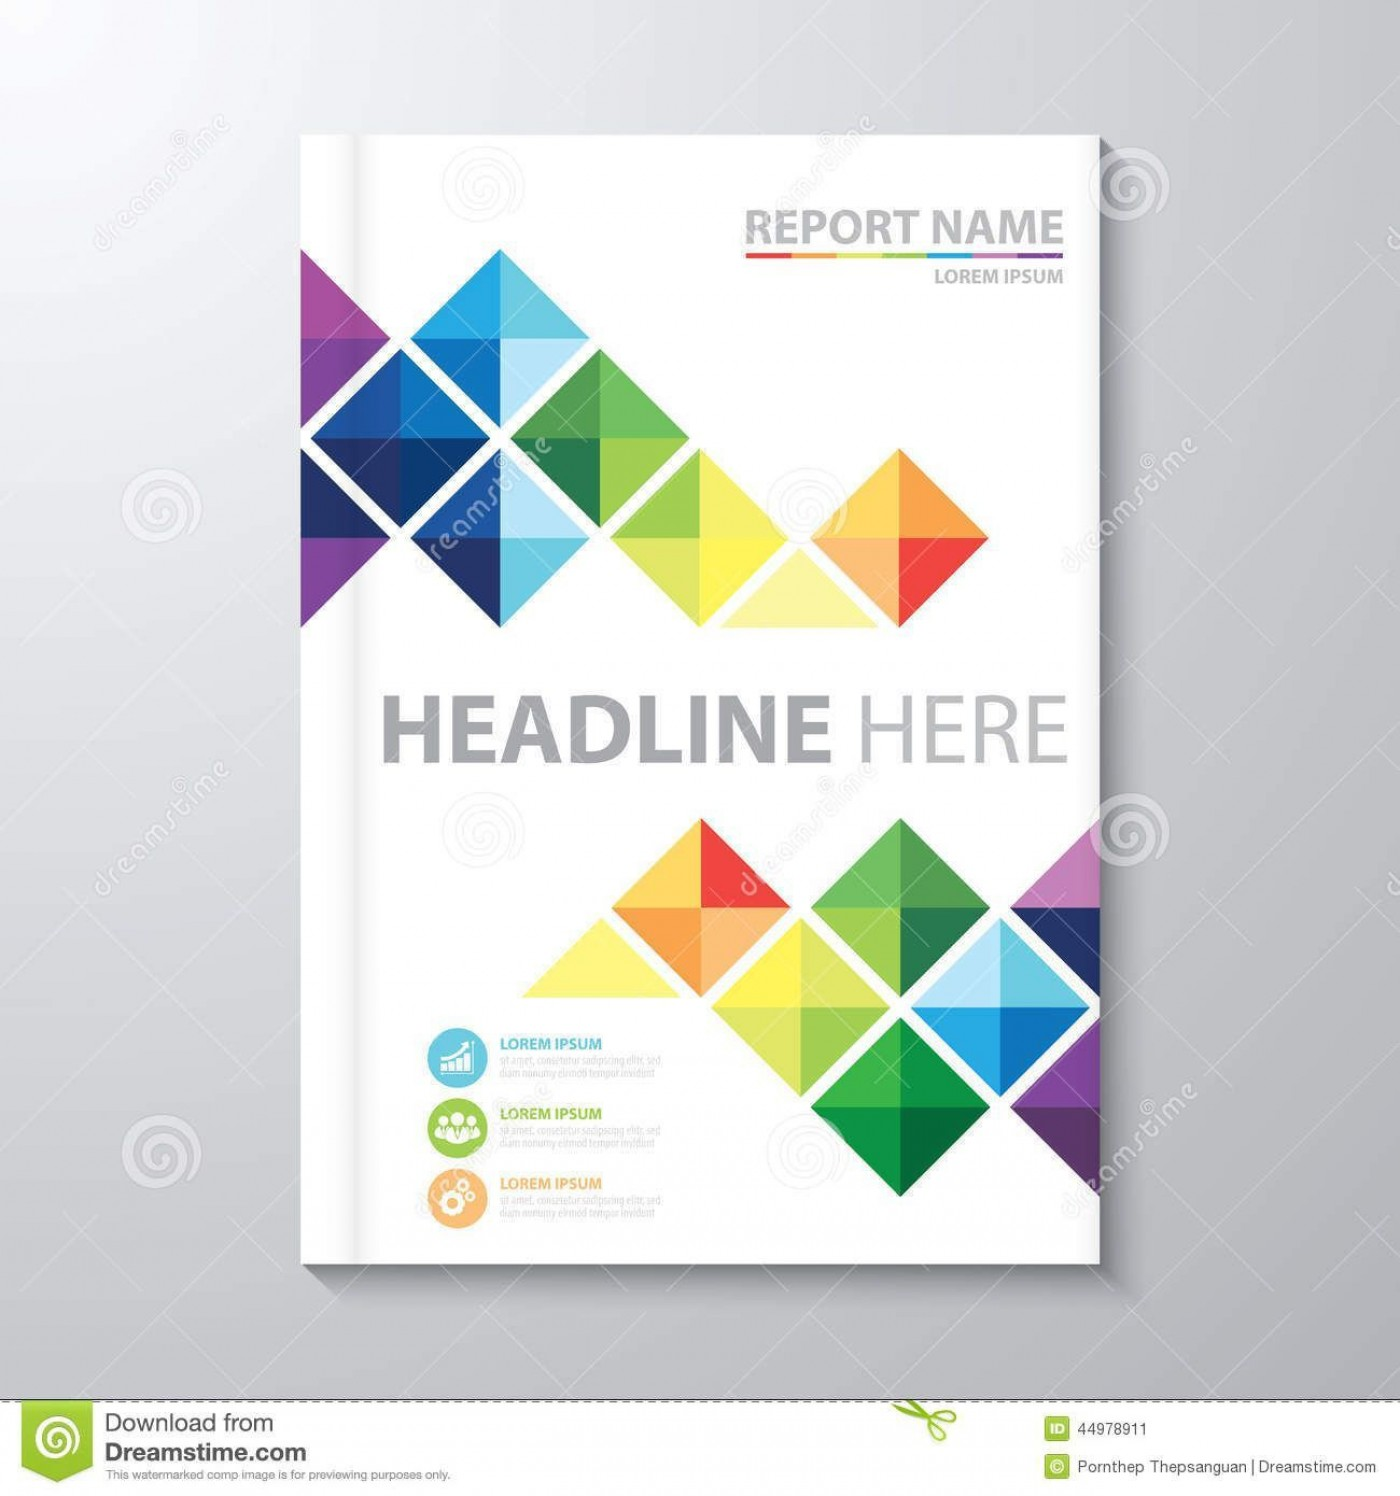 001 Incredible Free Download Annual Report Cover Design Template Example  In Word Page1400